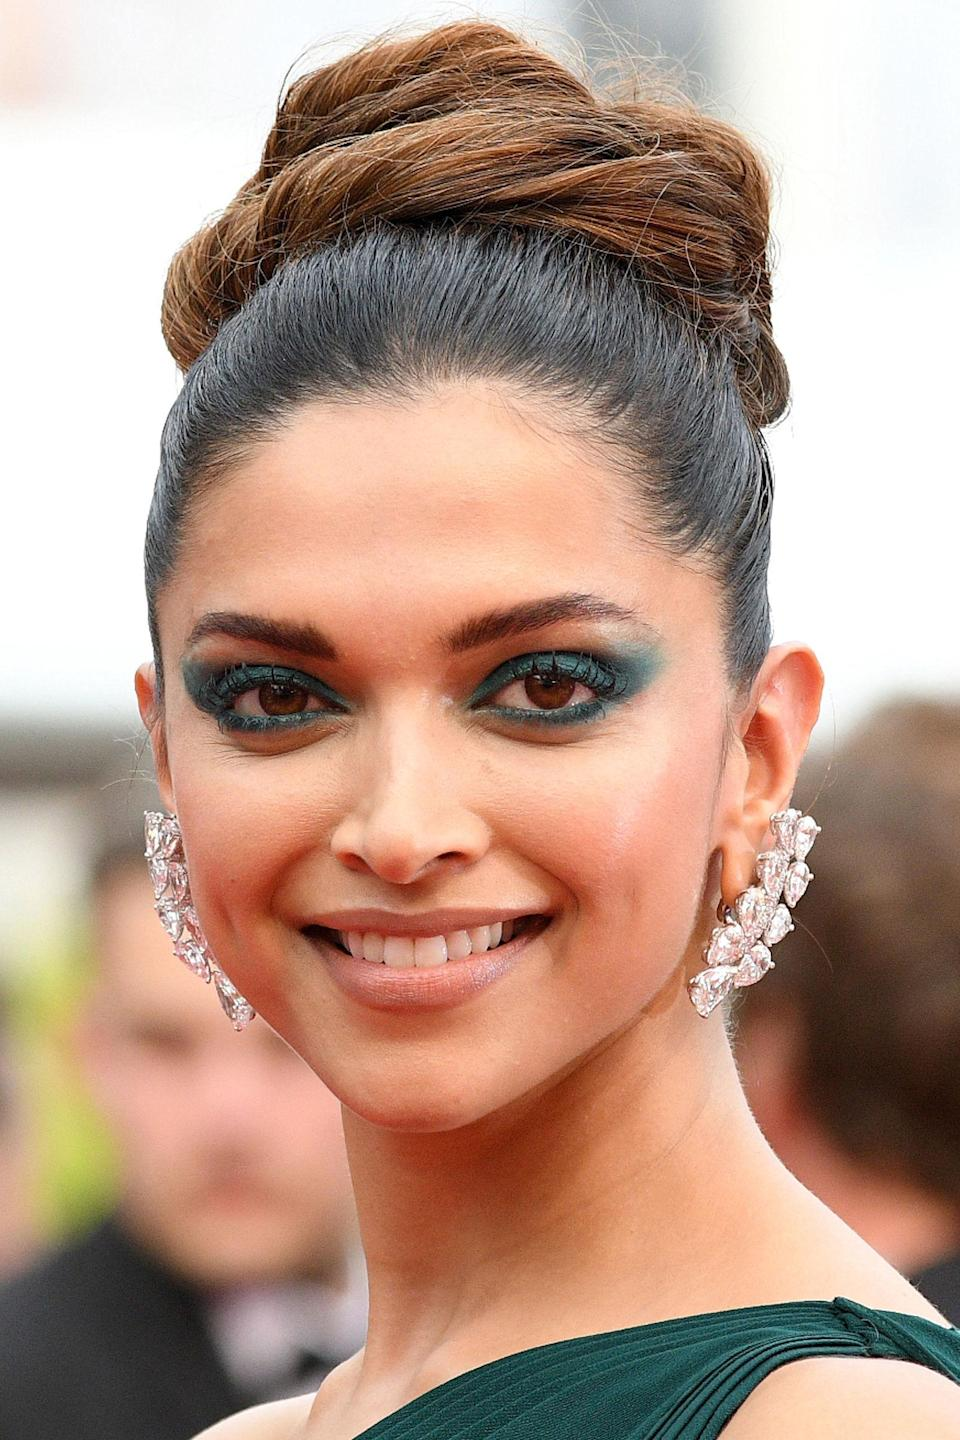 """<p>Padukone took <a rel=""""nofollow noopener"""" href=""""http://www.harpersbazaar.co.uk/fashion/style-files/news/g36775/one-tone-dressing/"""" target=""""_blank"""" data-ylk=""""slk:one-tone dressing"""" class=""""link rapid-noclick-resp"""">one-tone dressing</a> to the Cannes red carpet <a rel=""""nofollow noopener"""" href=""""http://www.harpersbazaar.co.uk/awards-season/news/g37516/threes-a-trend-matching-eye-makeup-dress-red-carpet-golden-globes/"""" target=""""_blank"""" data-ylk=""""slk:co-ordinating her eyeshadow"""" class=""""link rapid-noclick-resp"""">co-ordinating her eyeshadow</a>, dress and shoes to the same deep forest green shade. </p>"""